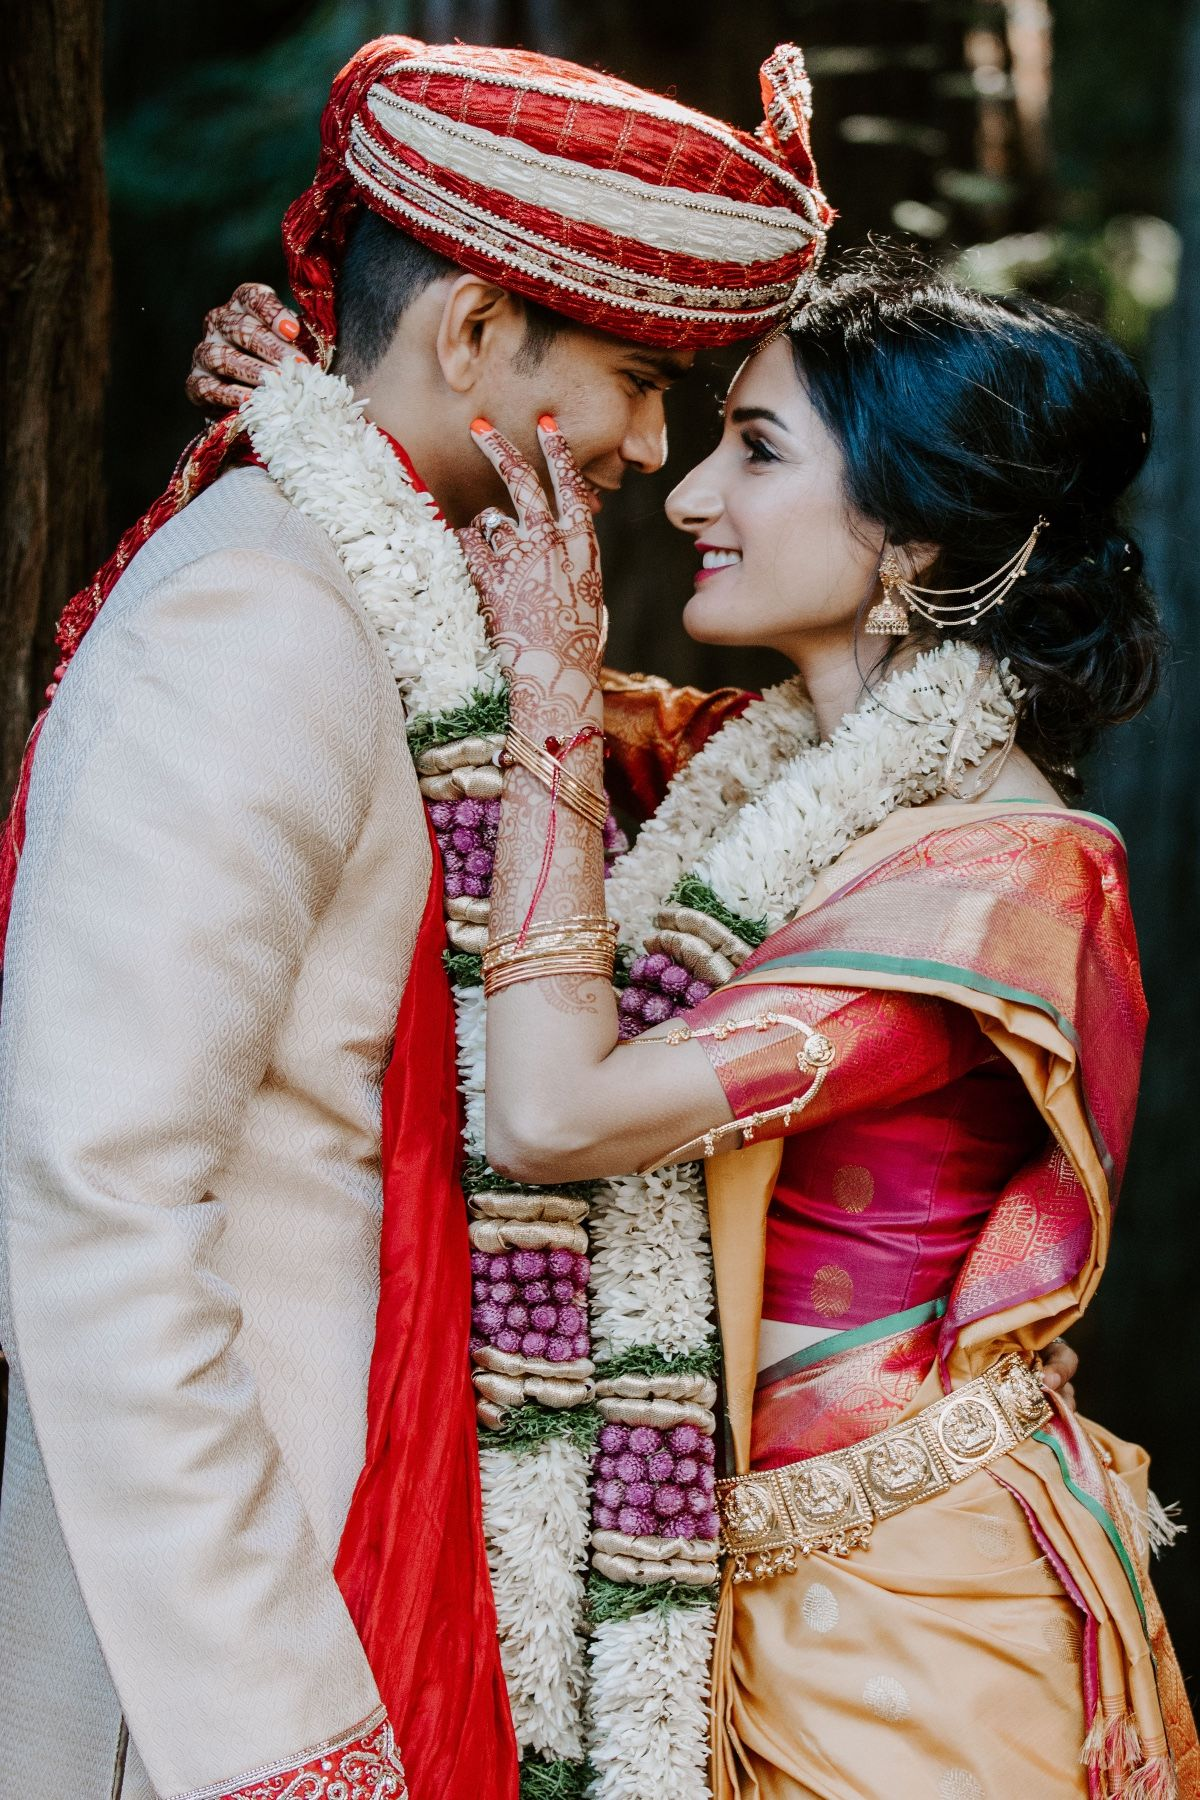 Visually Stunning Hindu Wedding In The Redwoods Indian Wedding Photography Couples Indian Wedding Photography Poses Hindu Wedding